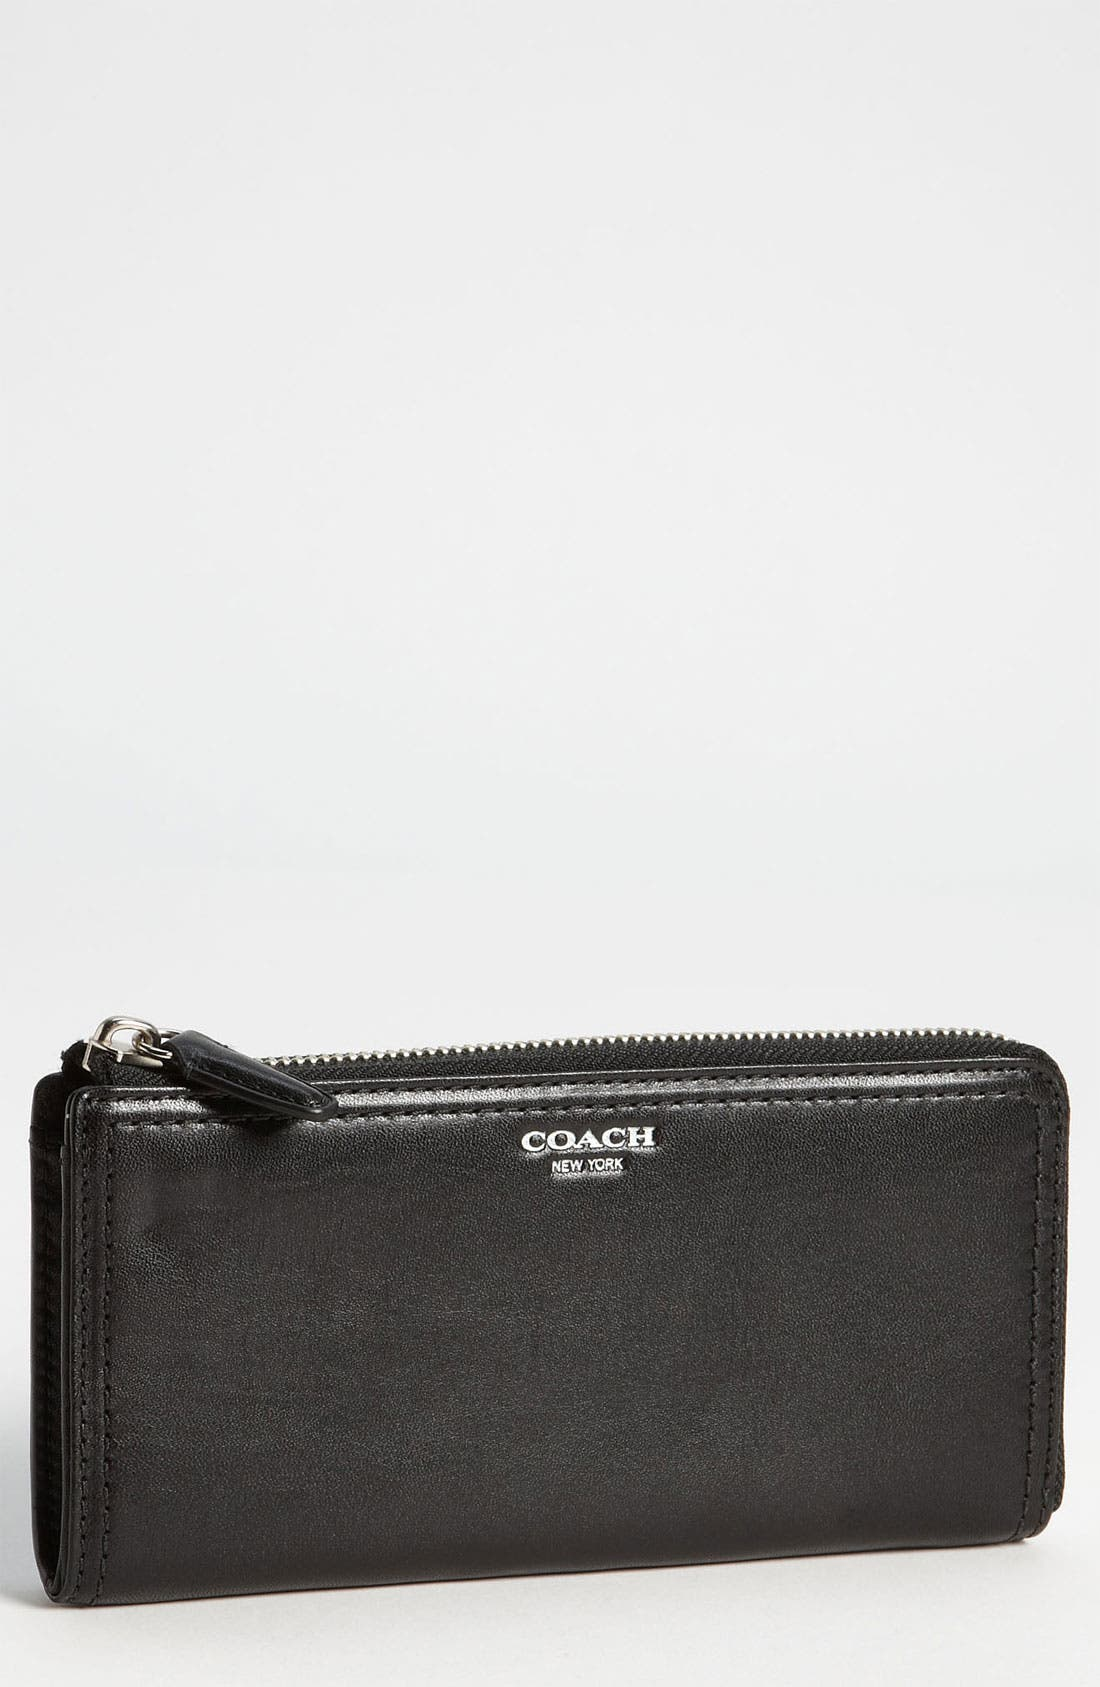 COACH 'Legacy' Leather Wallet, Main, color, 001